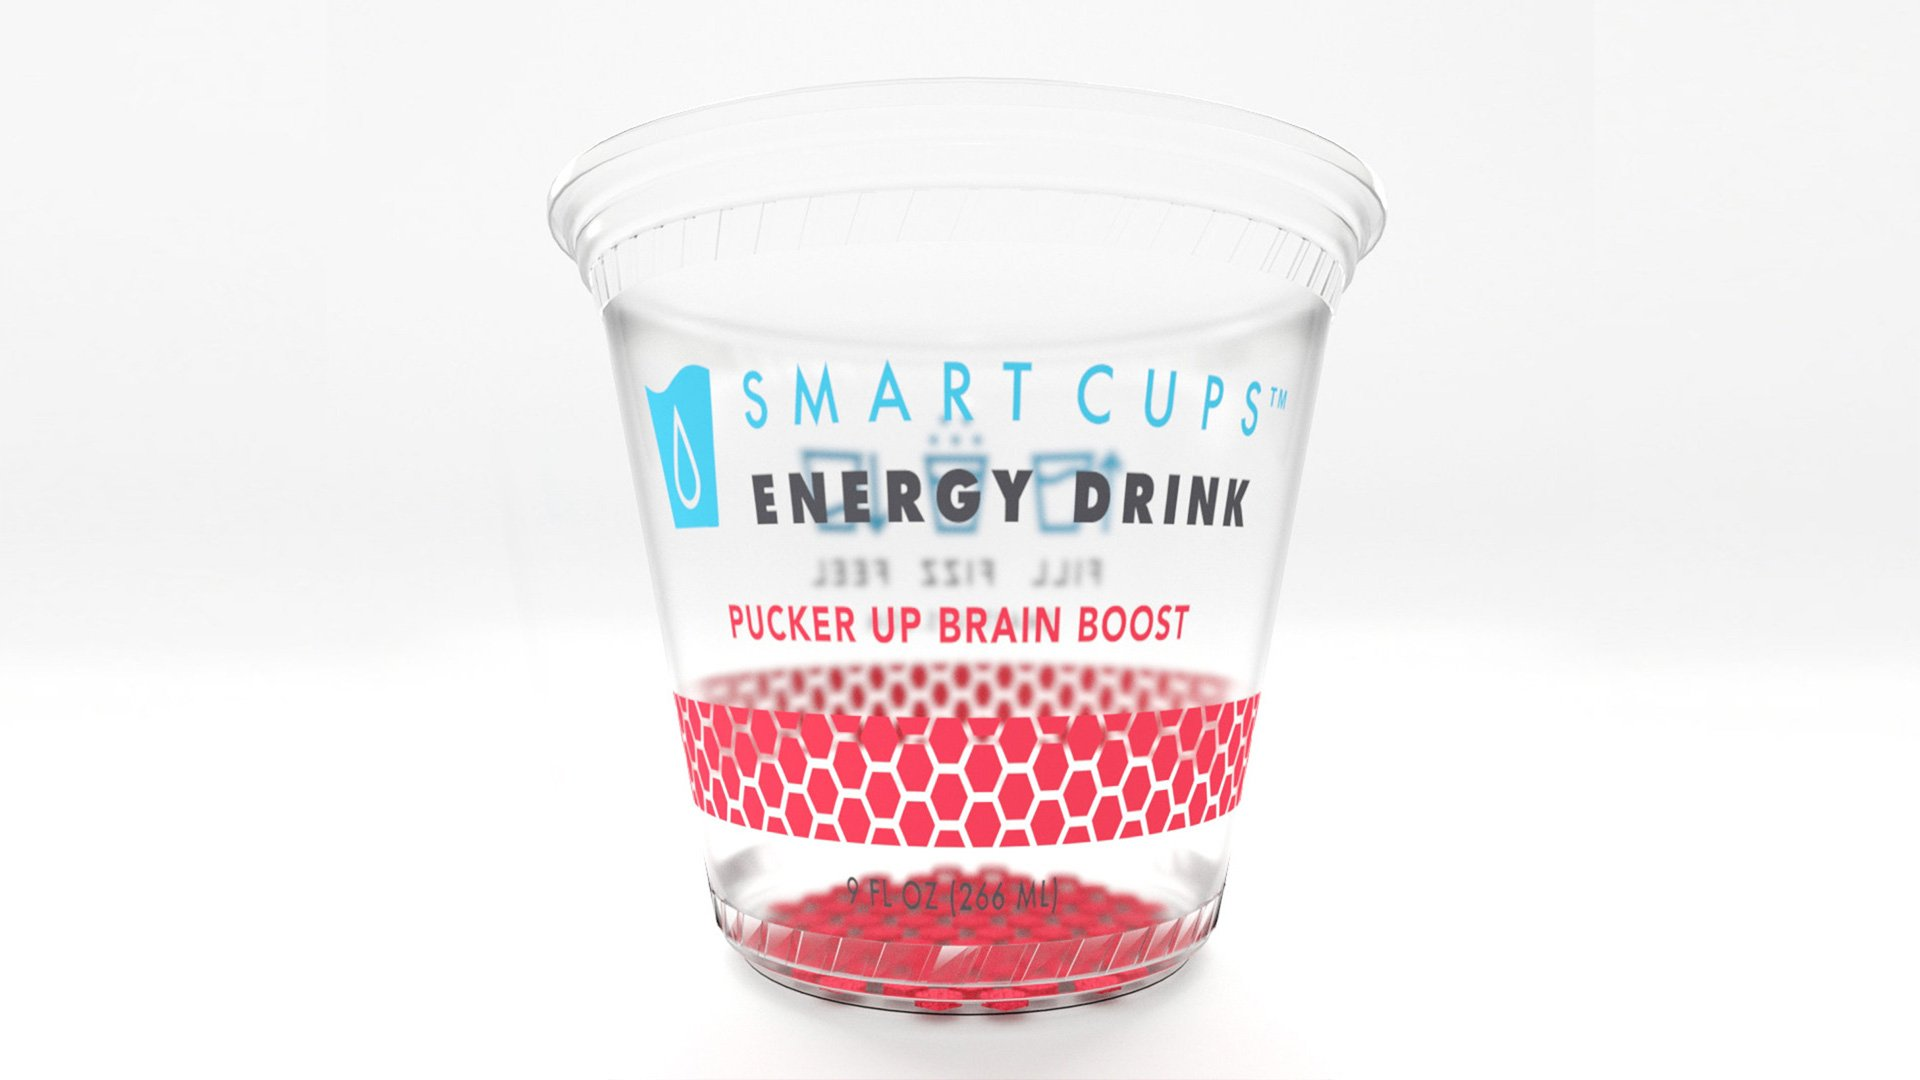 Smart Cups Debuts the 3D Printed Energy Drink | All3DP